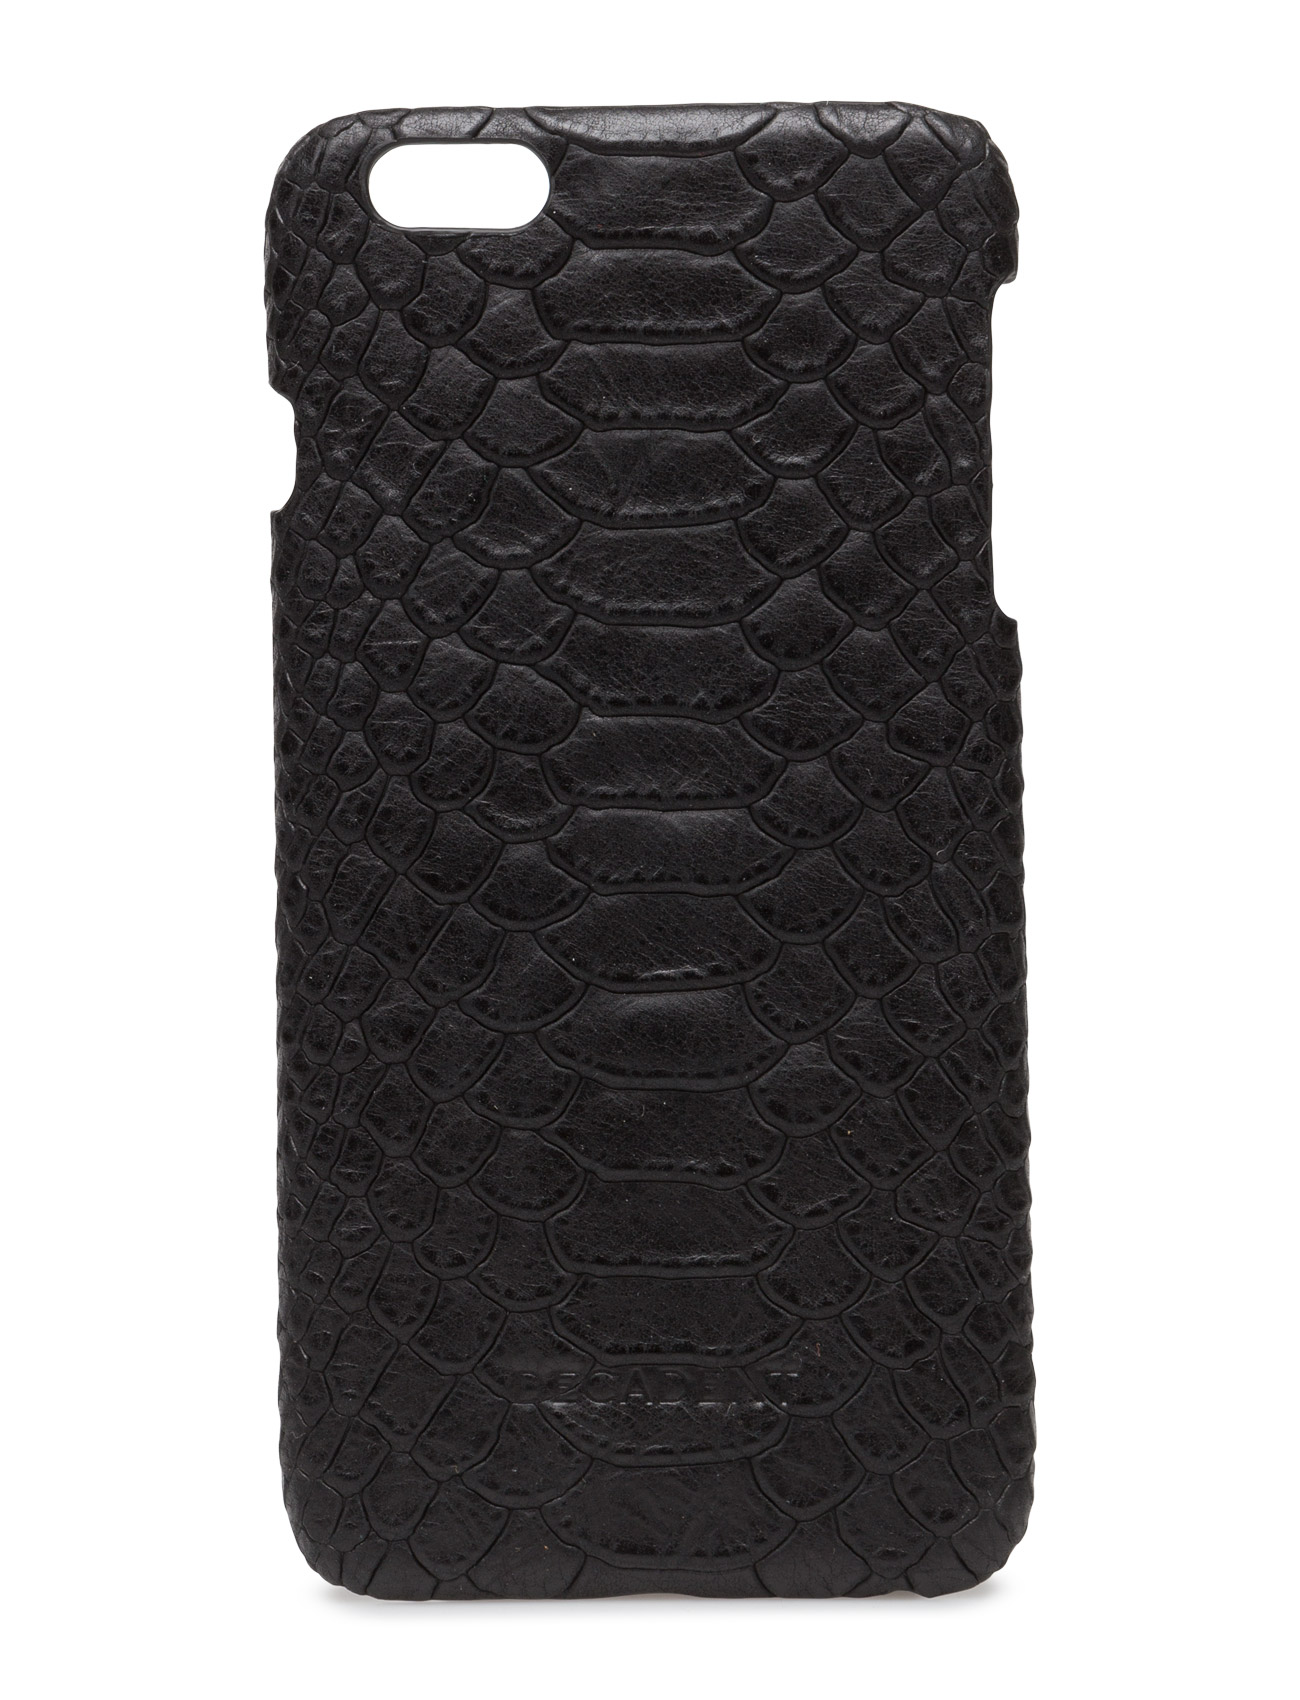 Decadent Iphone 6+ Cover 246762106